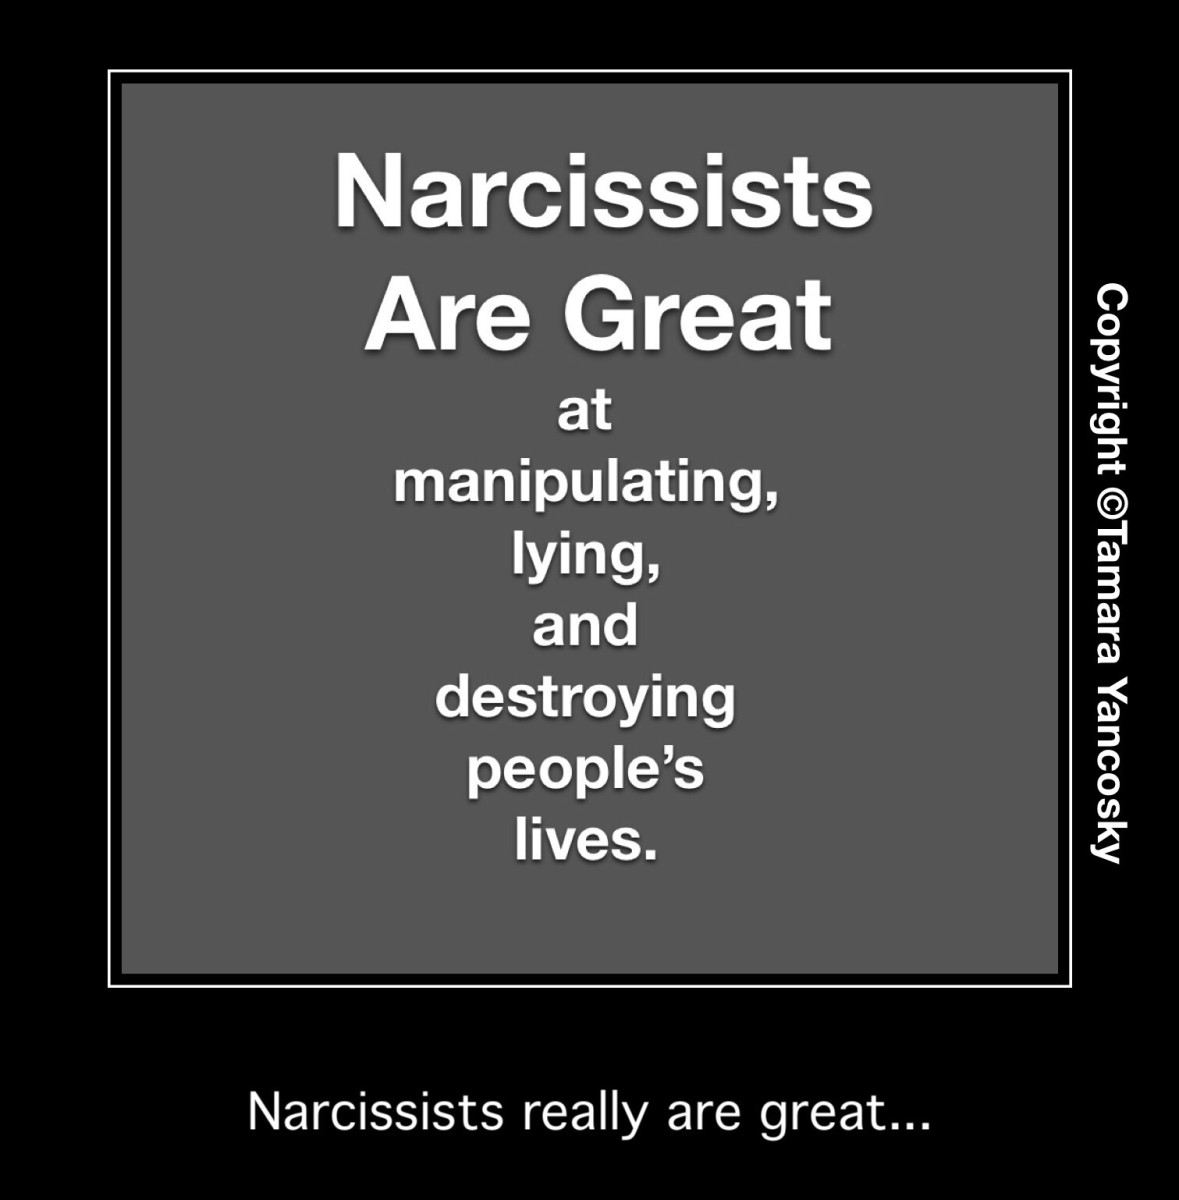 crumbs-from-narcissists-creative-writing